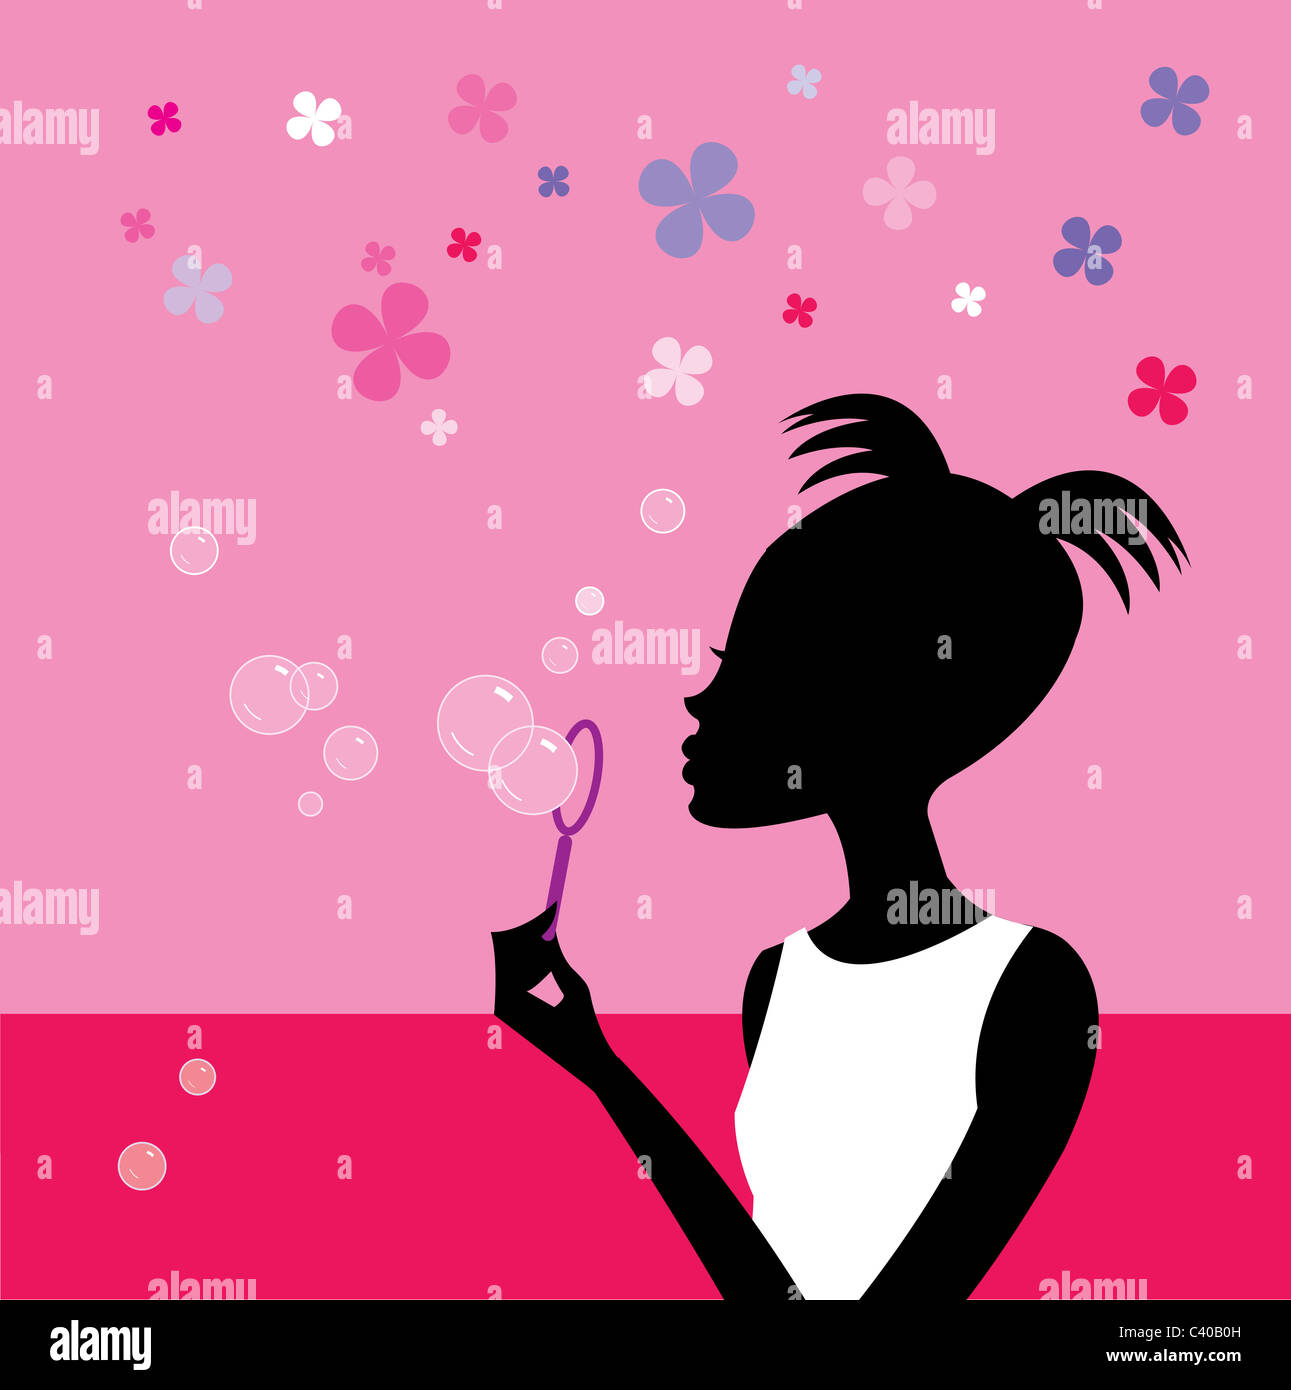 Illustration of a woman blowing bubbles Photo Stock